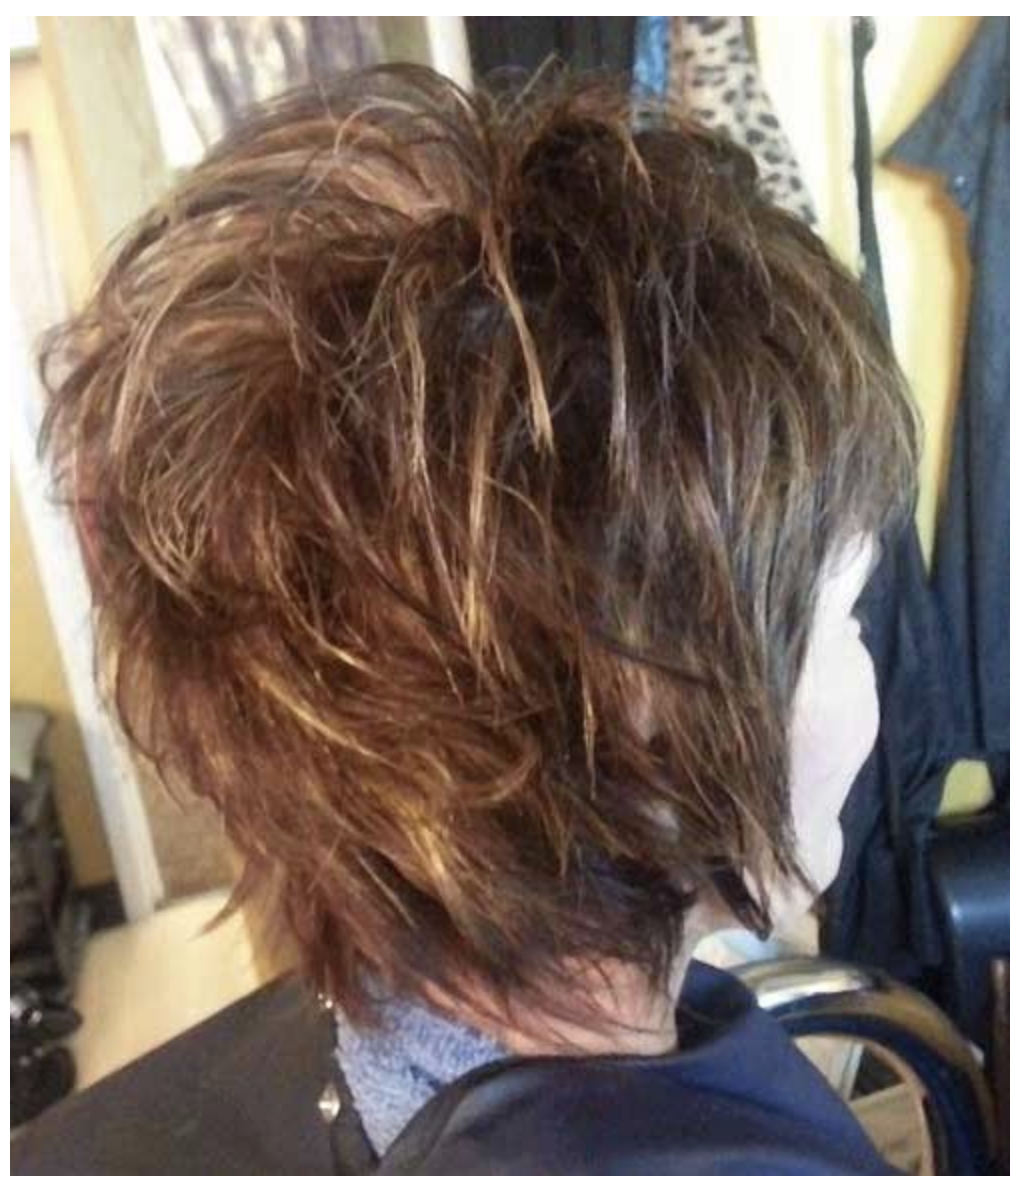 2020 Short Layered Haircuts for Women Over 50 - Younger Look! -  LatestHairstylePedia.com